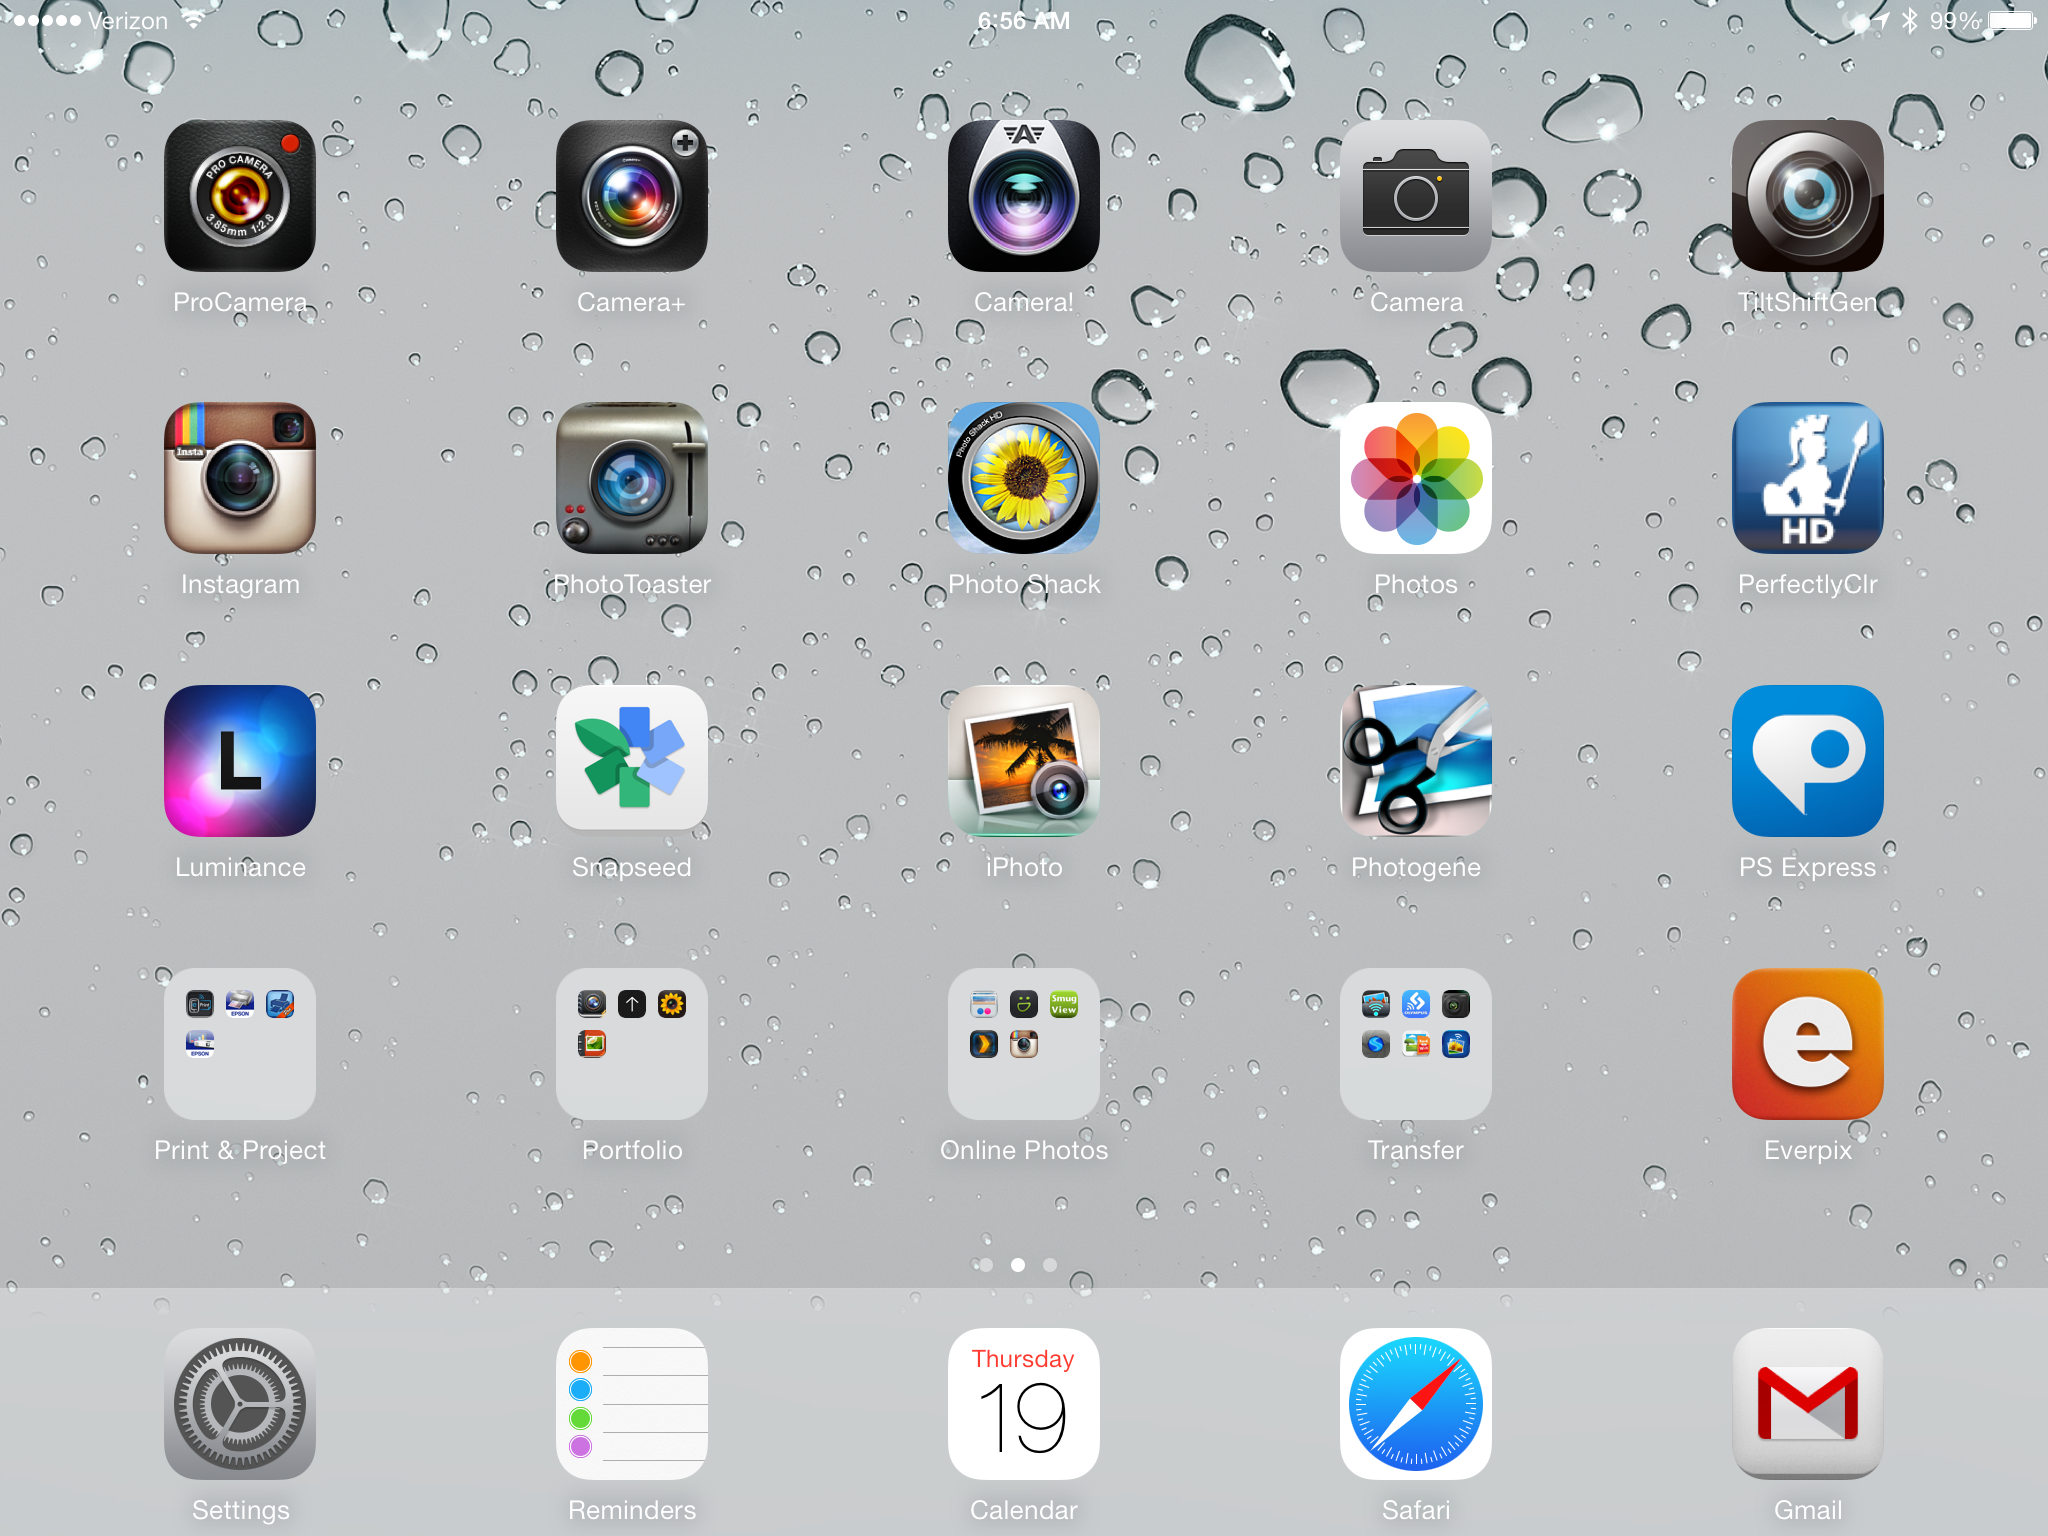 http://thedigitalstory.com/2013/09/19/ios7-photo-apps.png